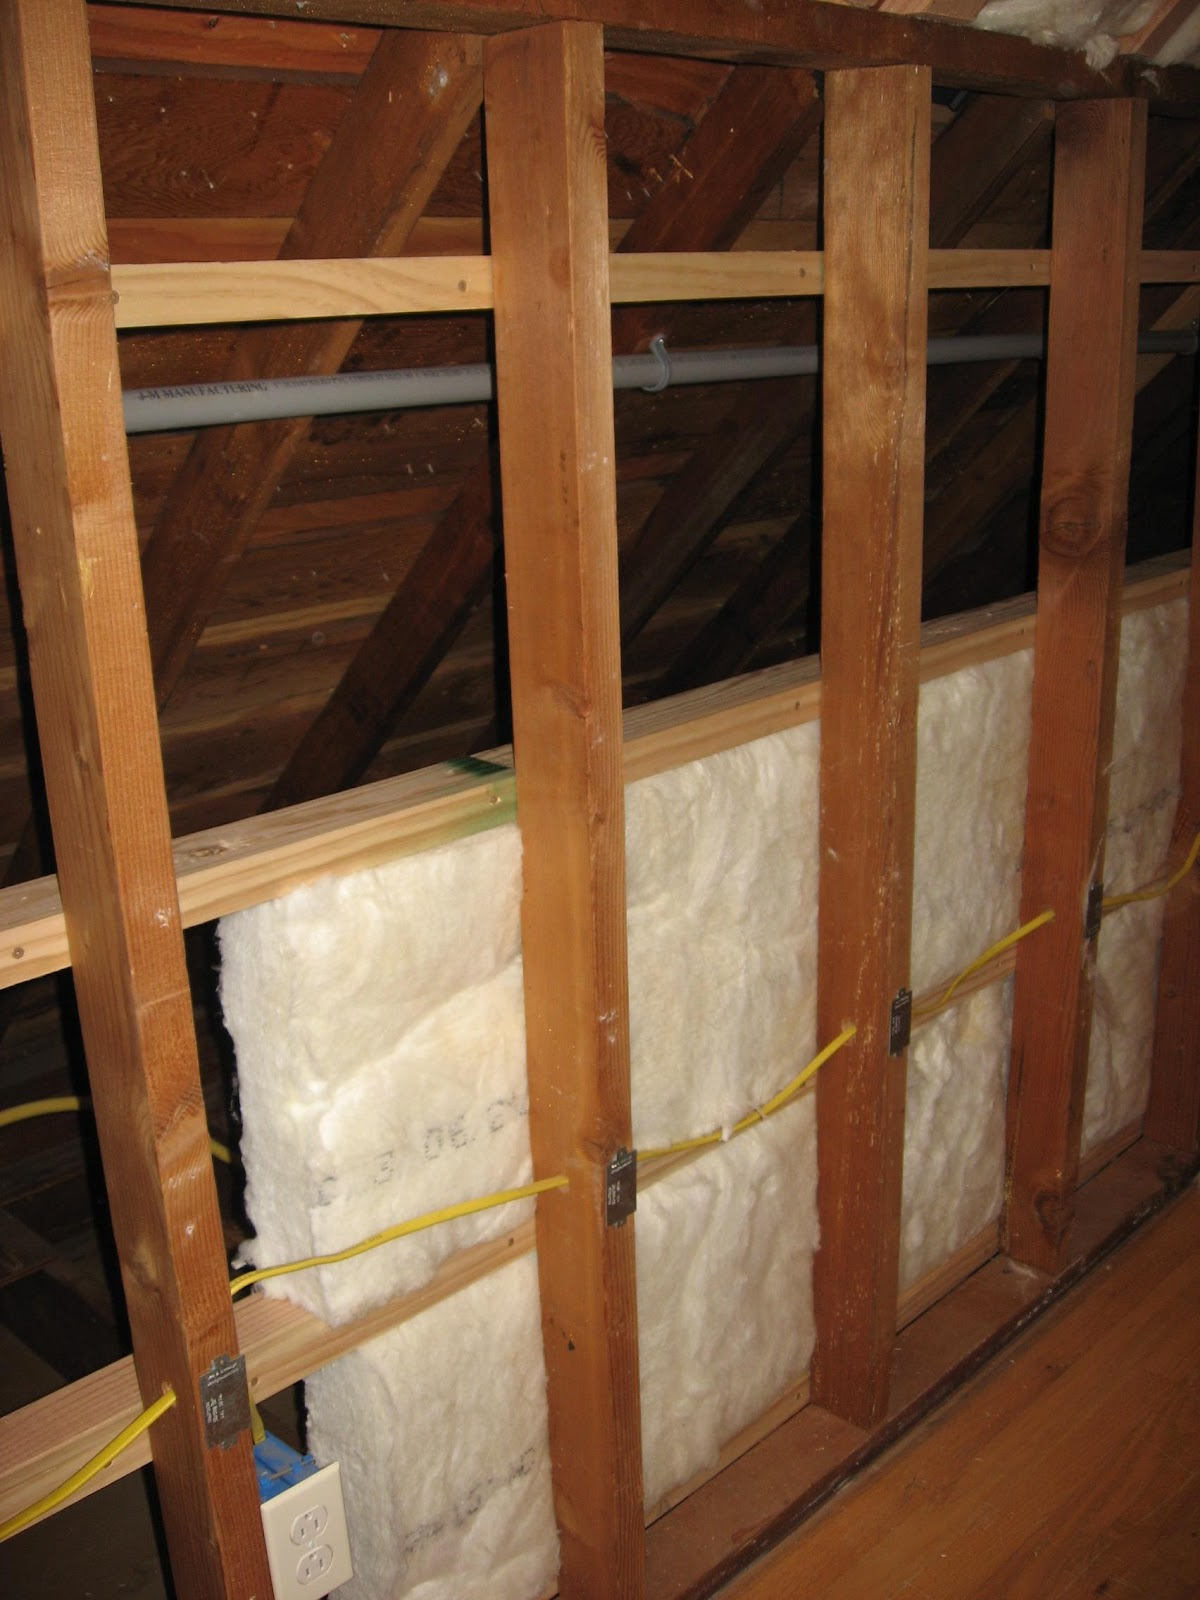 Insulation for 2xand 2xWalls - Home Renovations - m